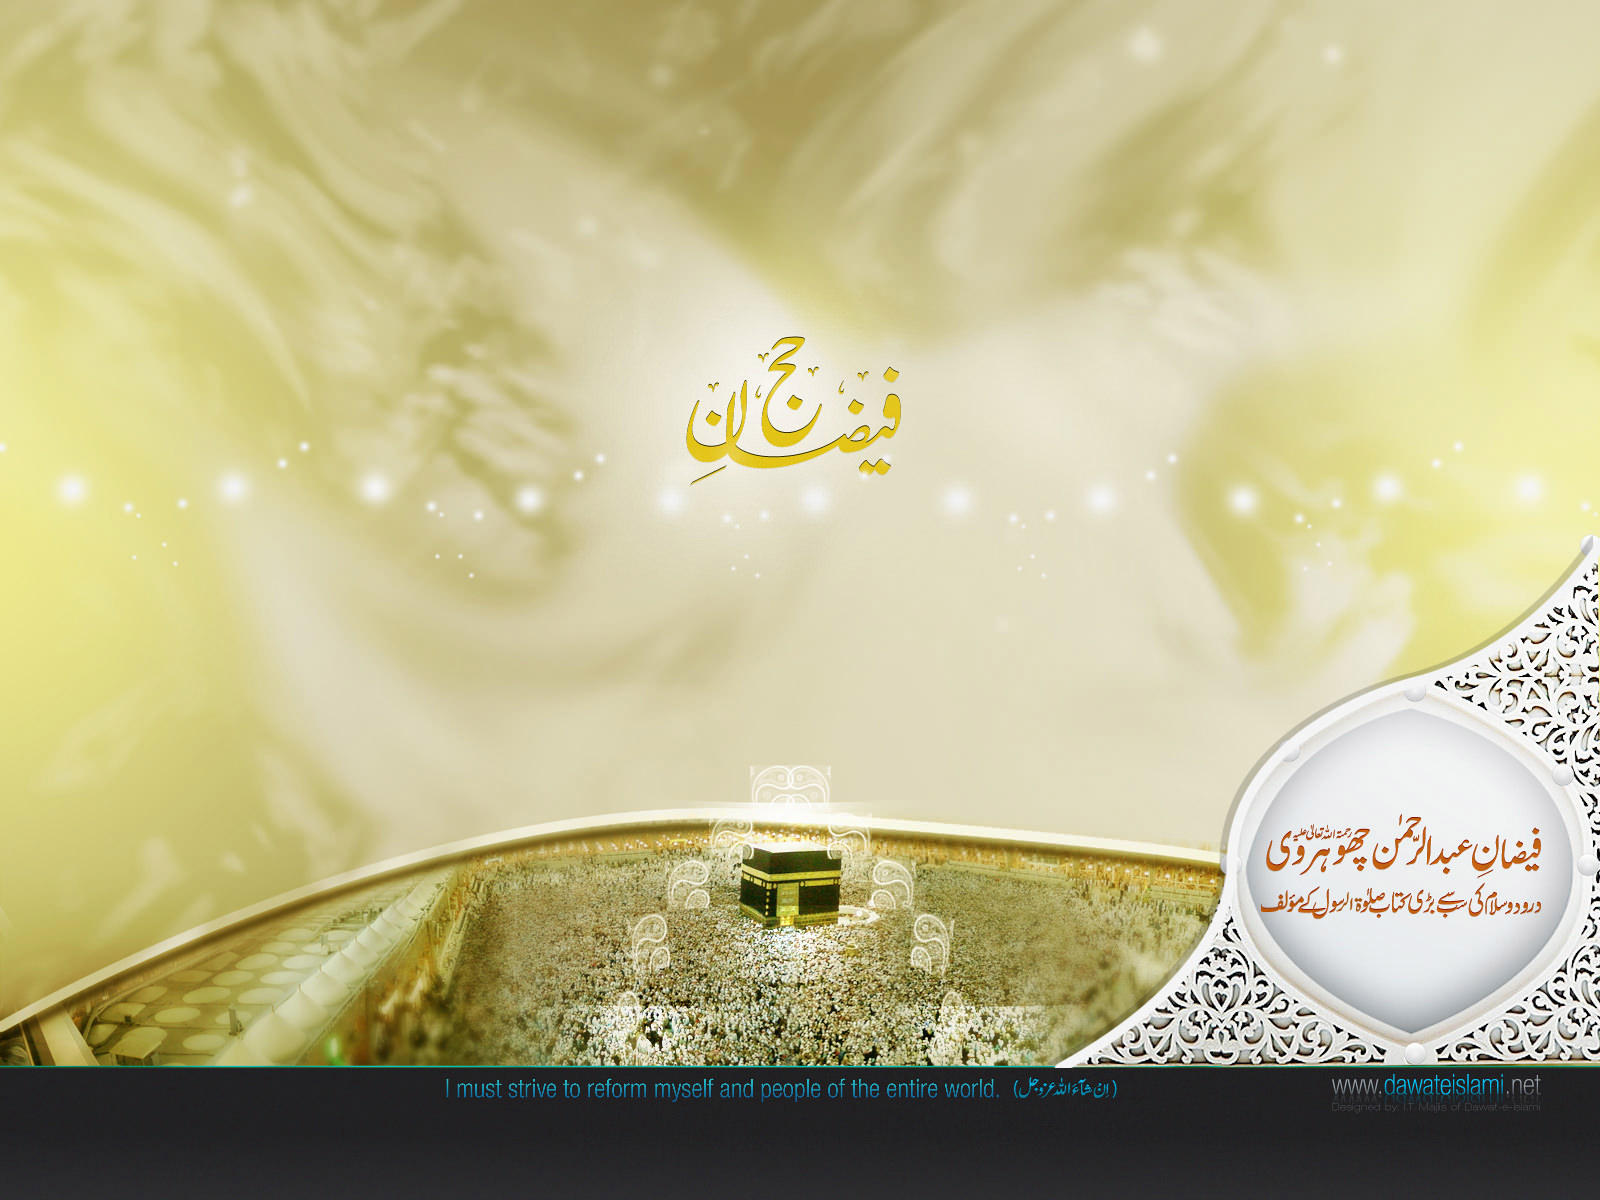 Wallpapers Hajj 23